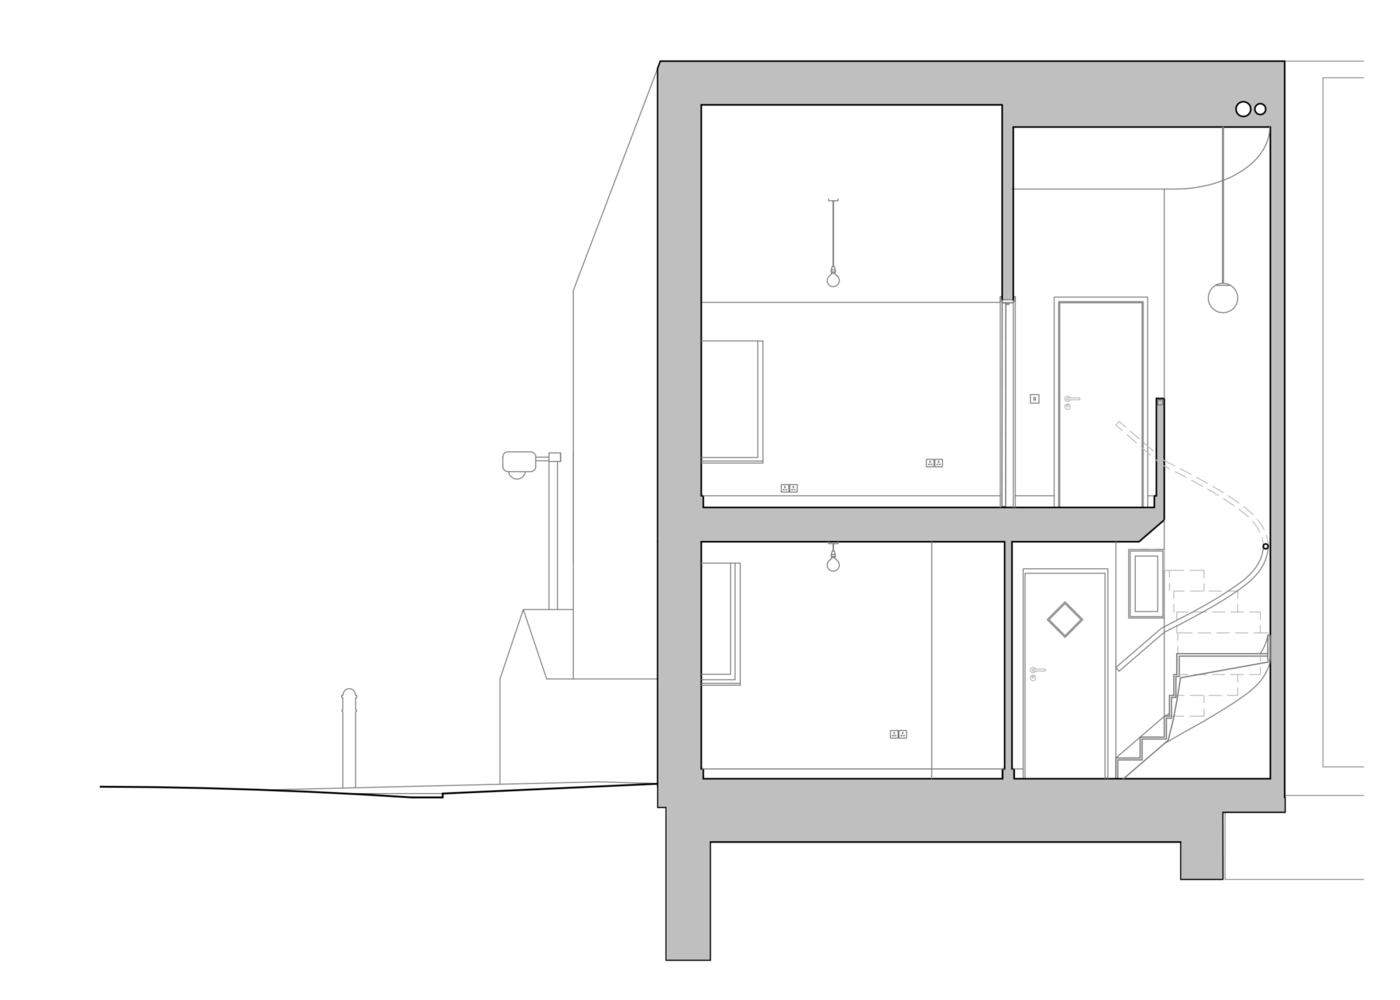 salmen house bedroom and stair section scale 1 to 50 at a3 [ 1400 x 1000 Pixel ]